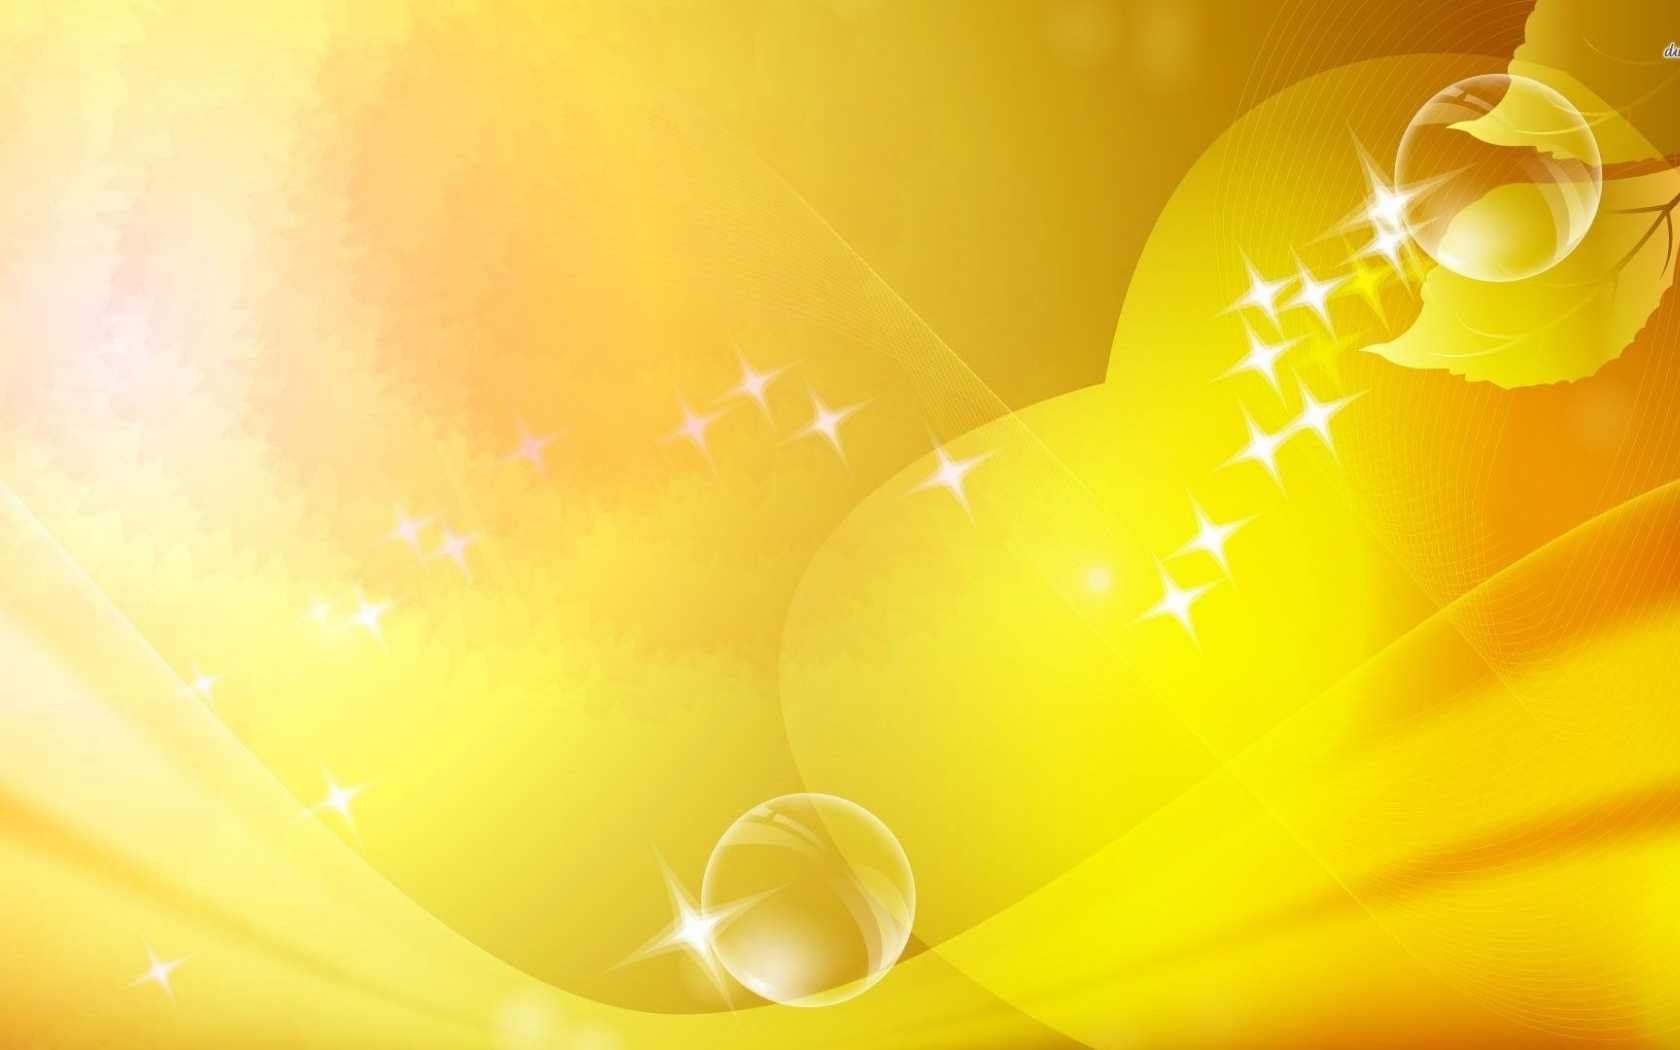 Free Download You Are My Sunshine Wallpaper 1920x1080 For Your